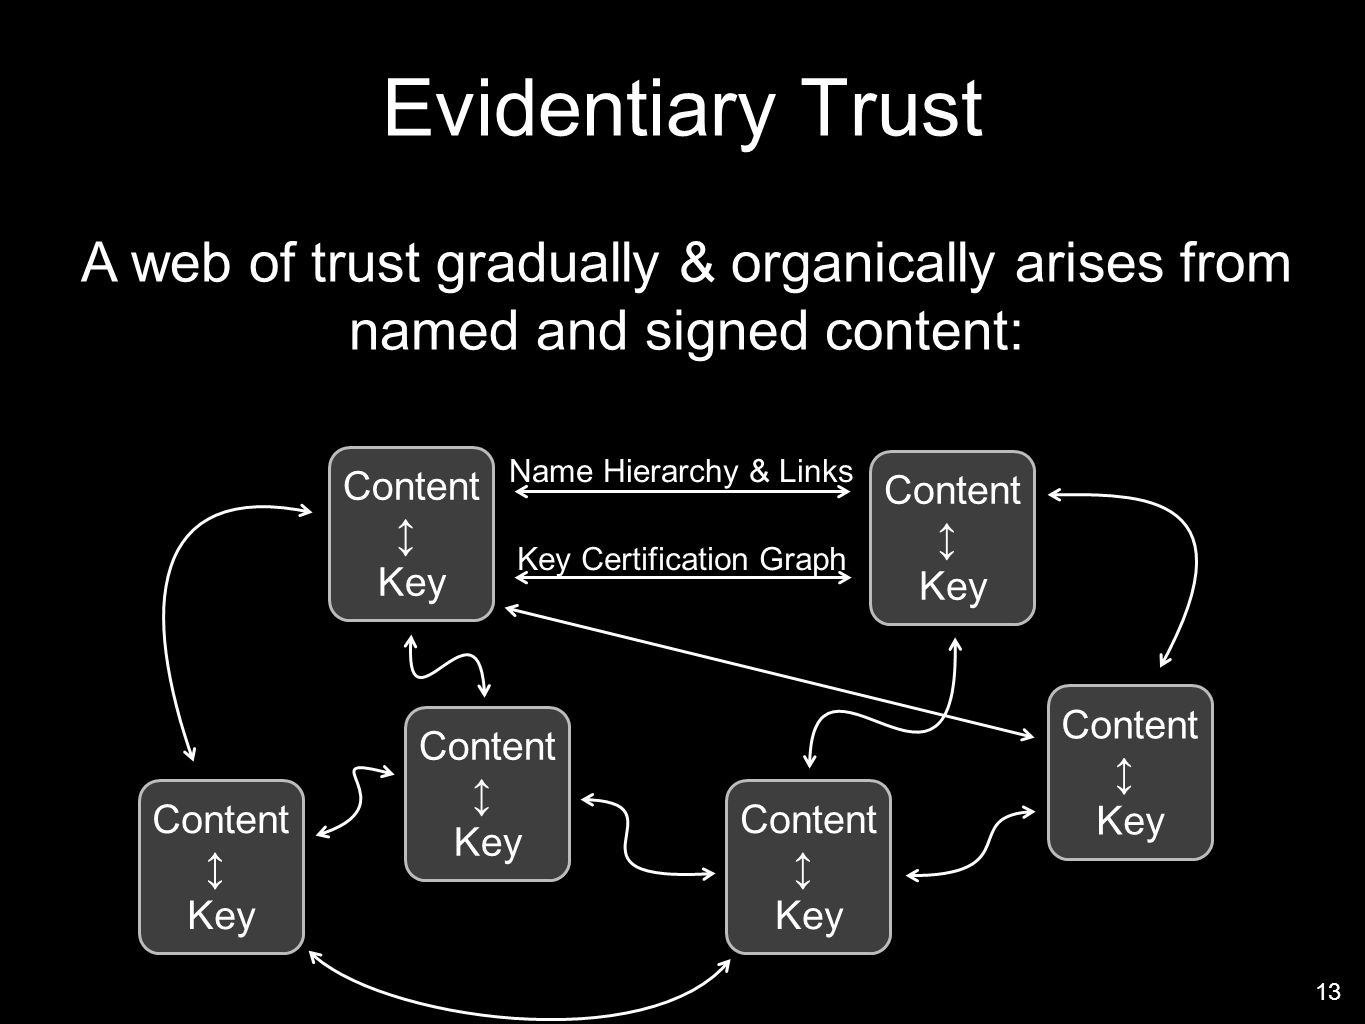 13 Evidentiary Trust Content Key Content Key Name Hierarchy & Links Key Certification Graph Content Key Content Key Content Key Content Key A web of trust gradually & organically arises from named and signed content: